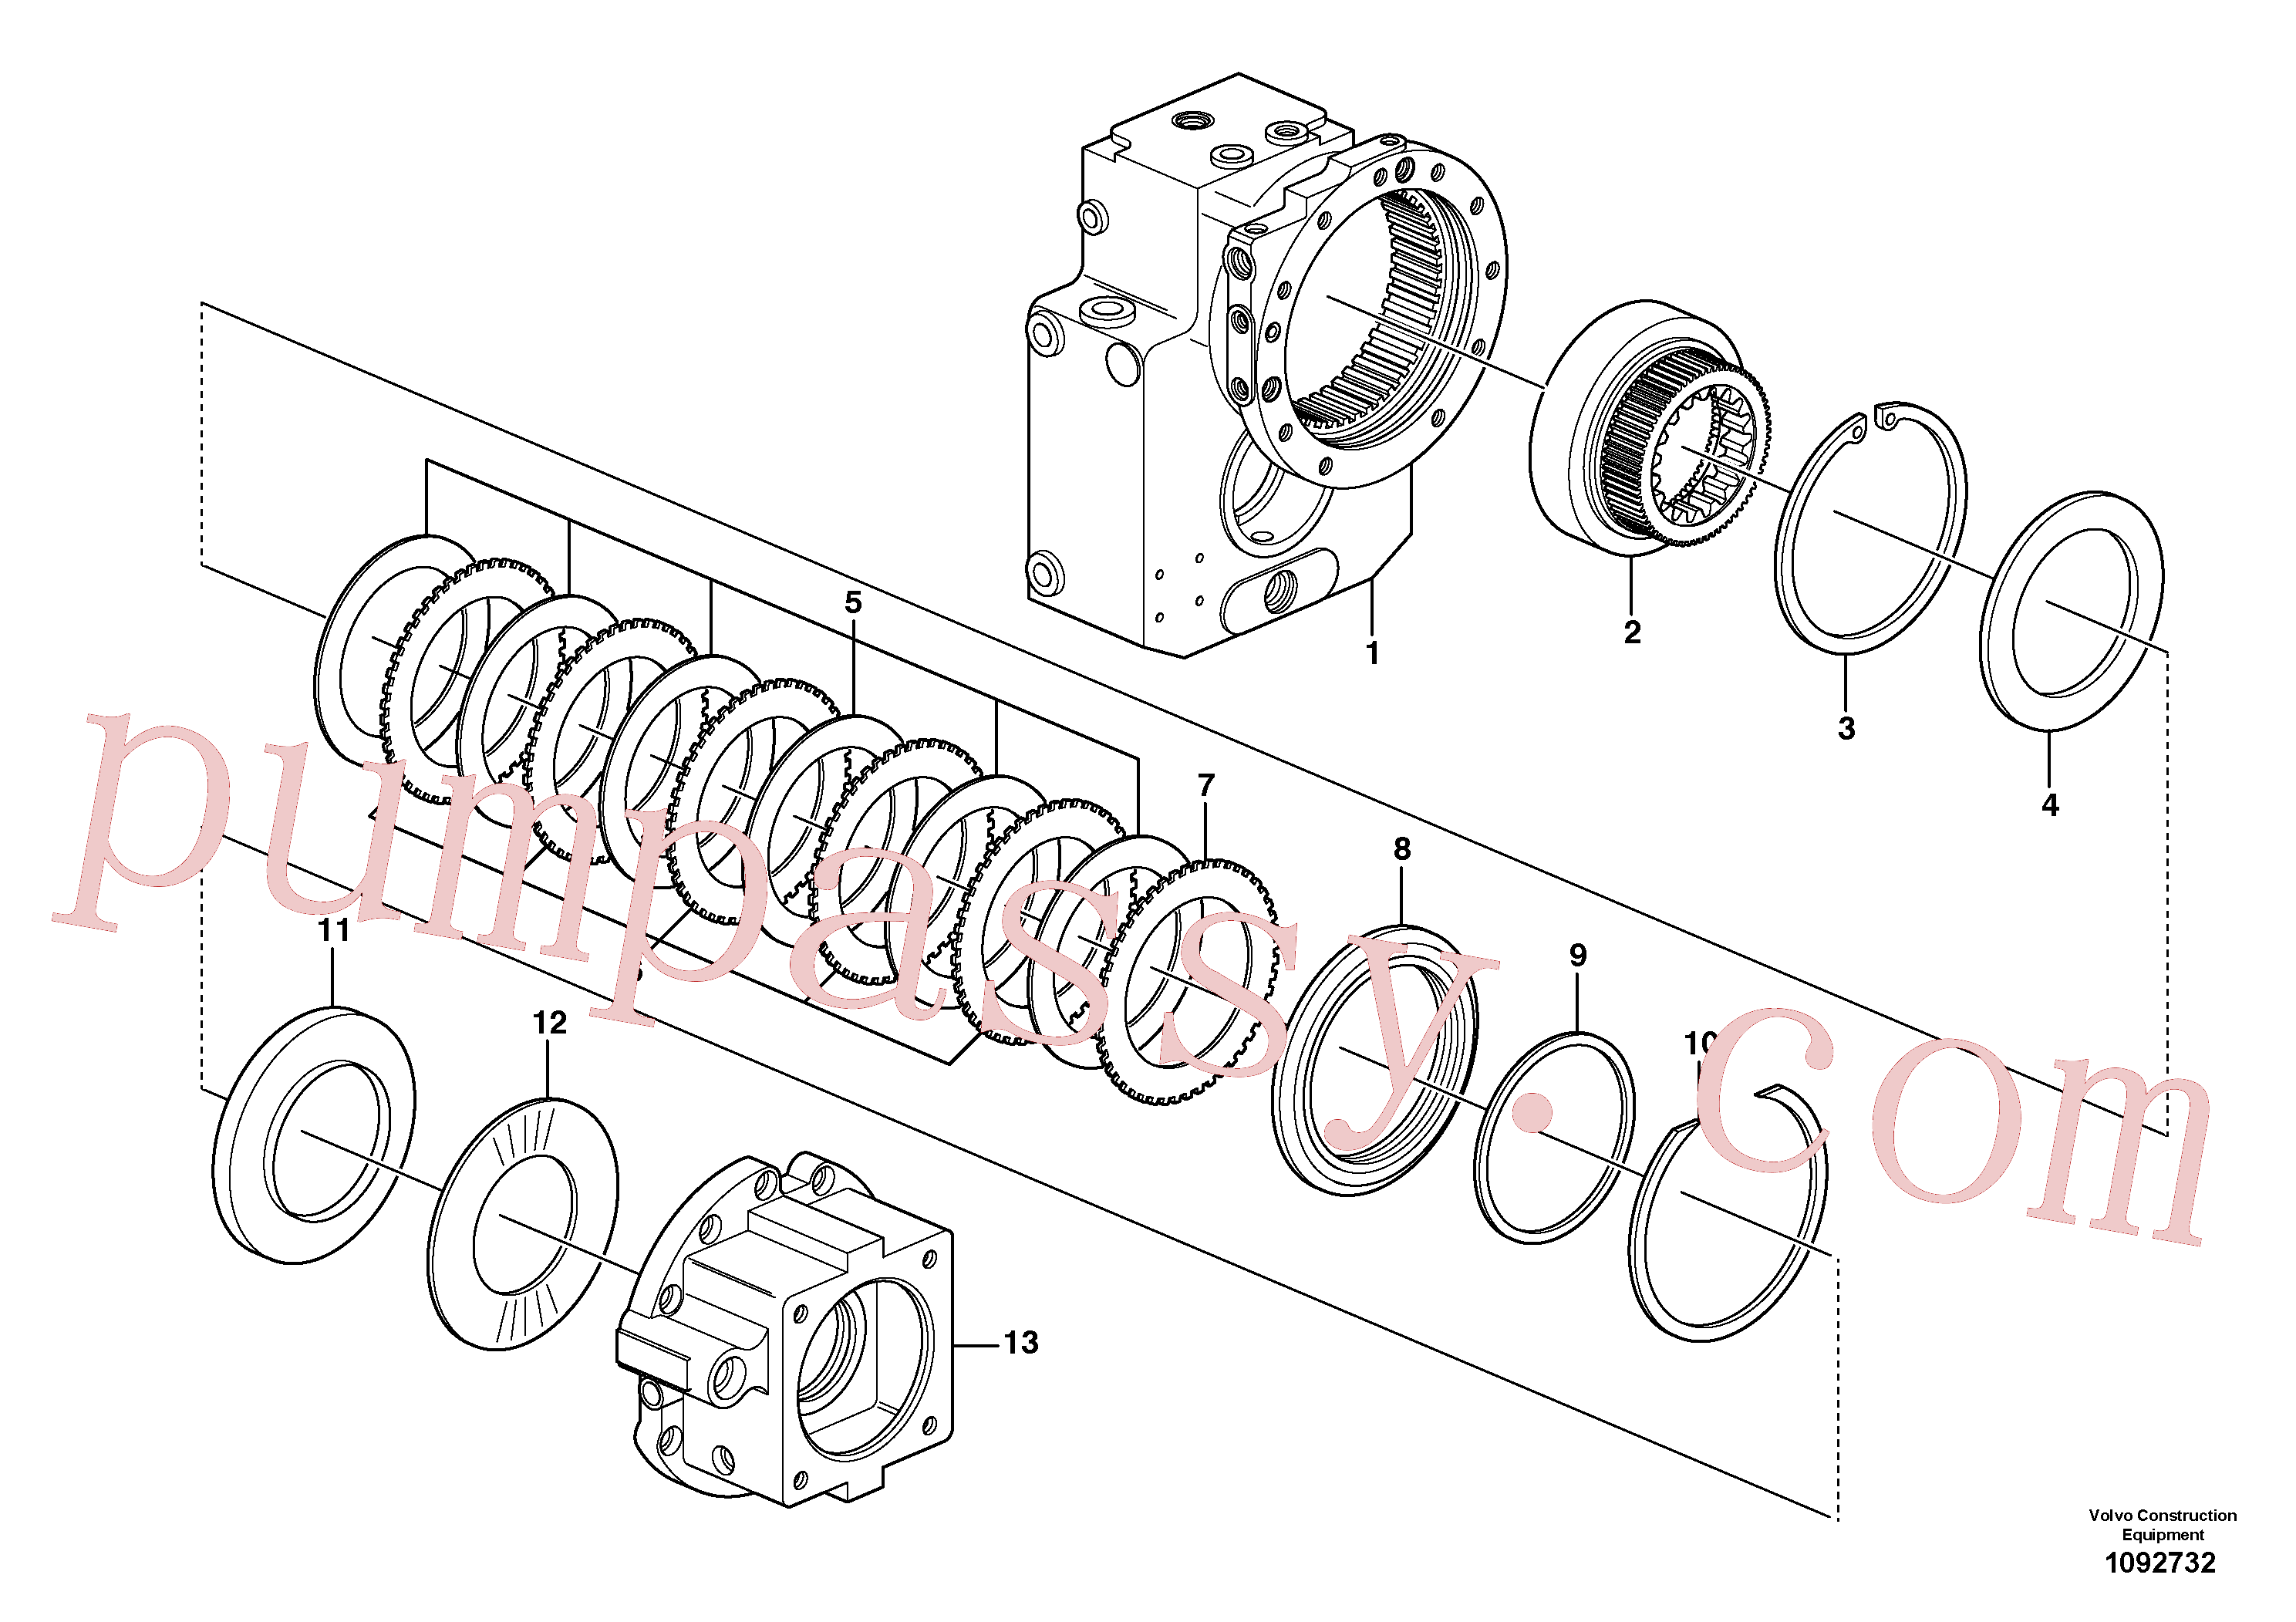 SA8220-02440 for Volvo Dropbox, Brake plates(1092732 assembly)